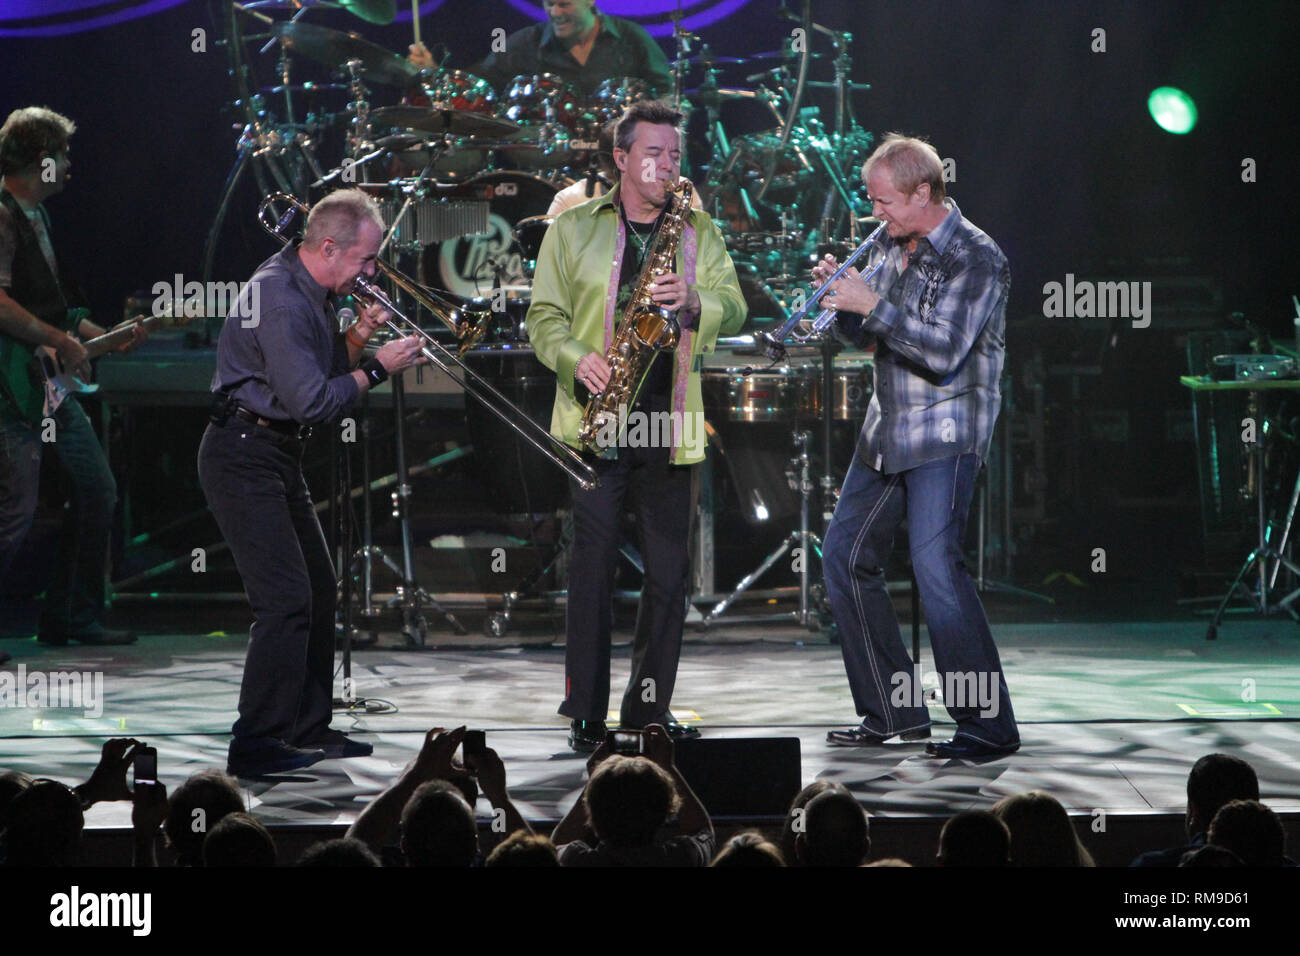 Chicago band members are shown performing on stage during a